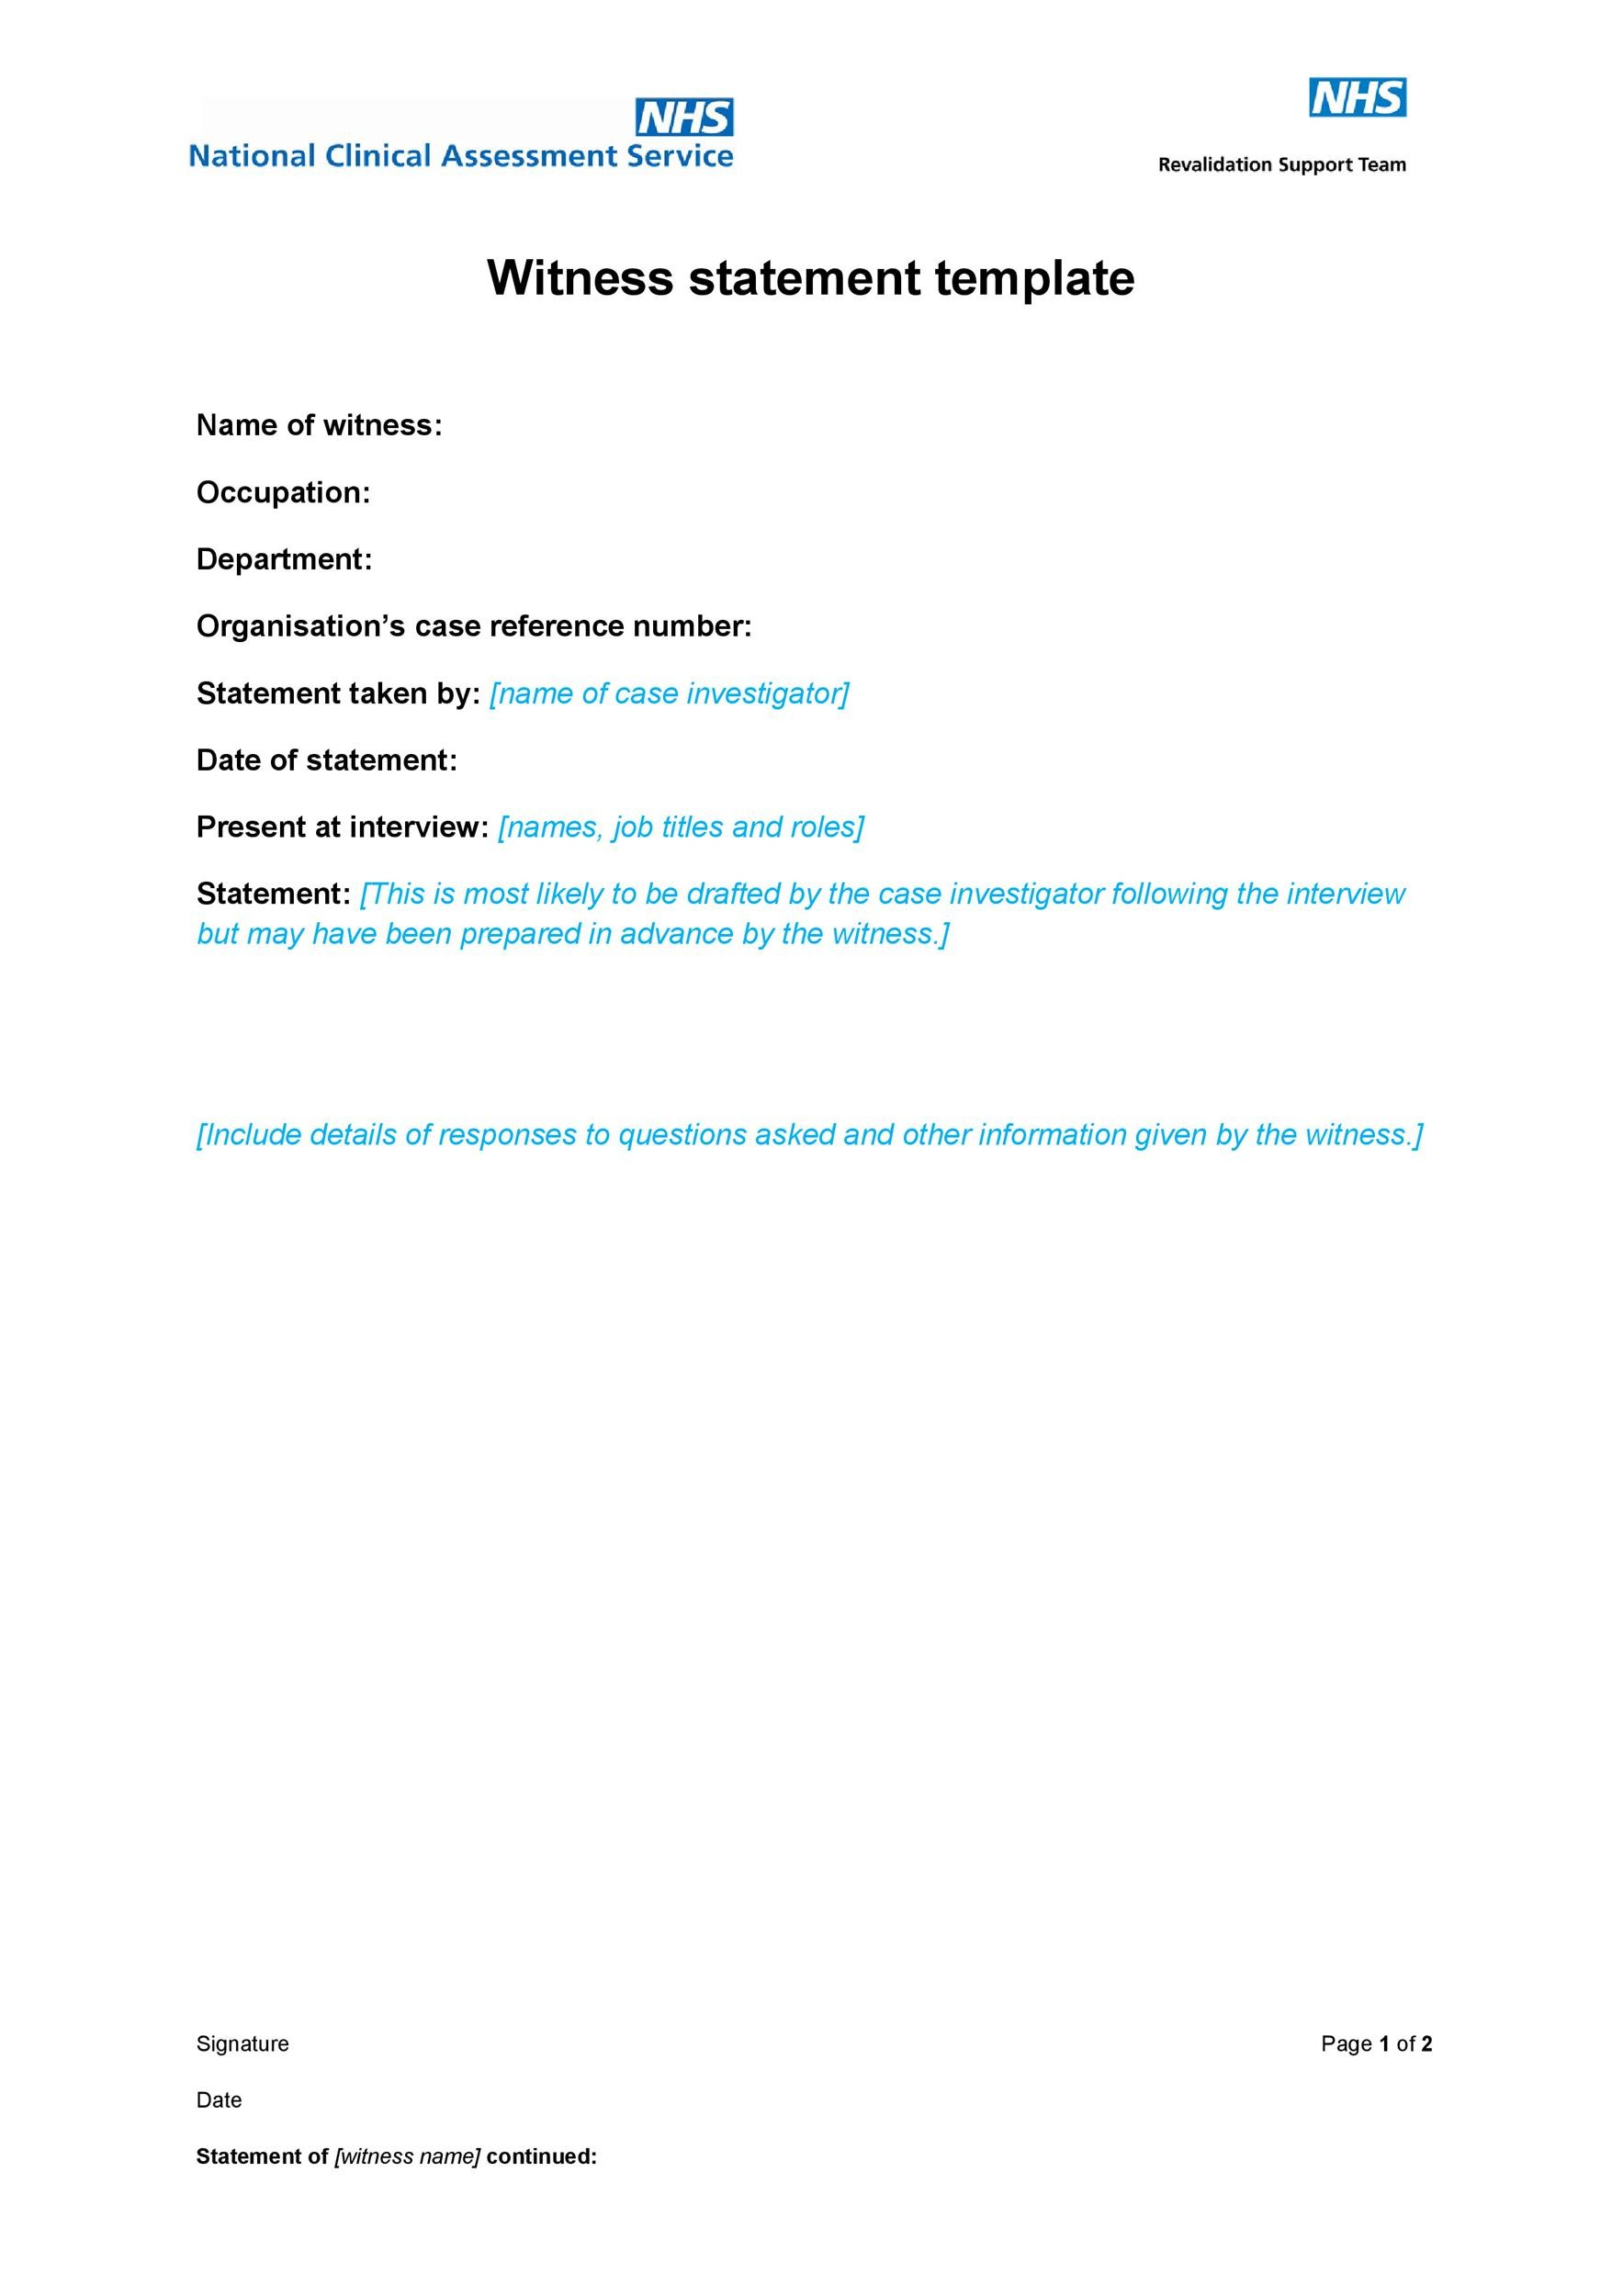 50 Professional Witness Statement Forms  Templates ᐅ Template Lab